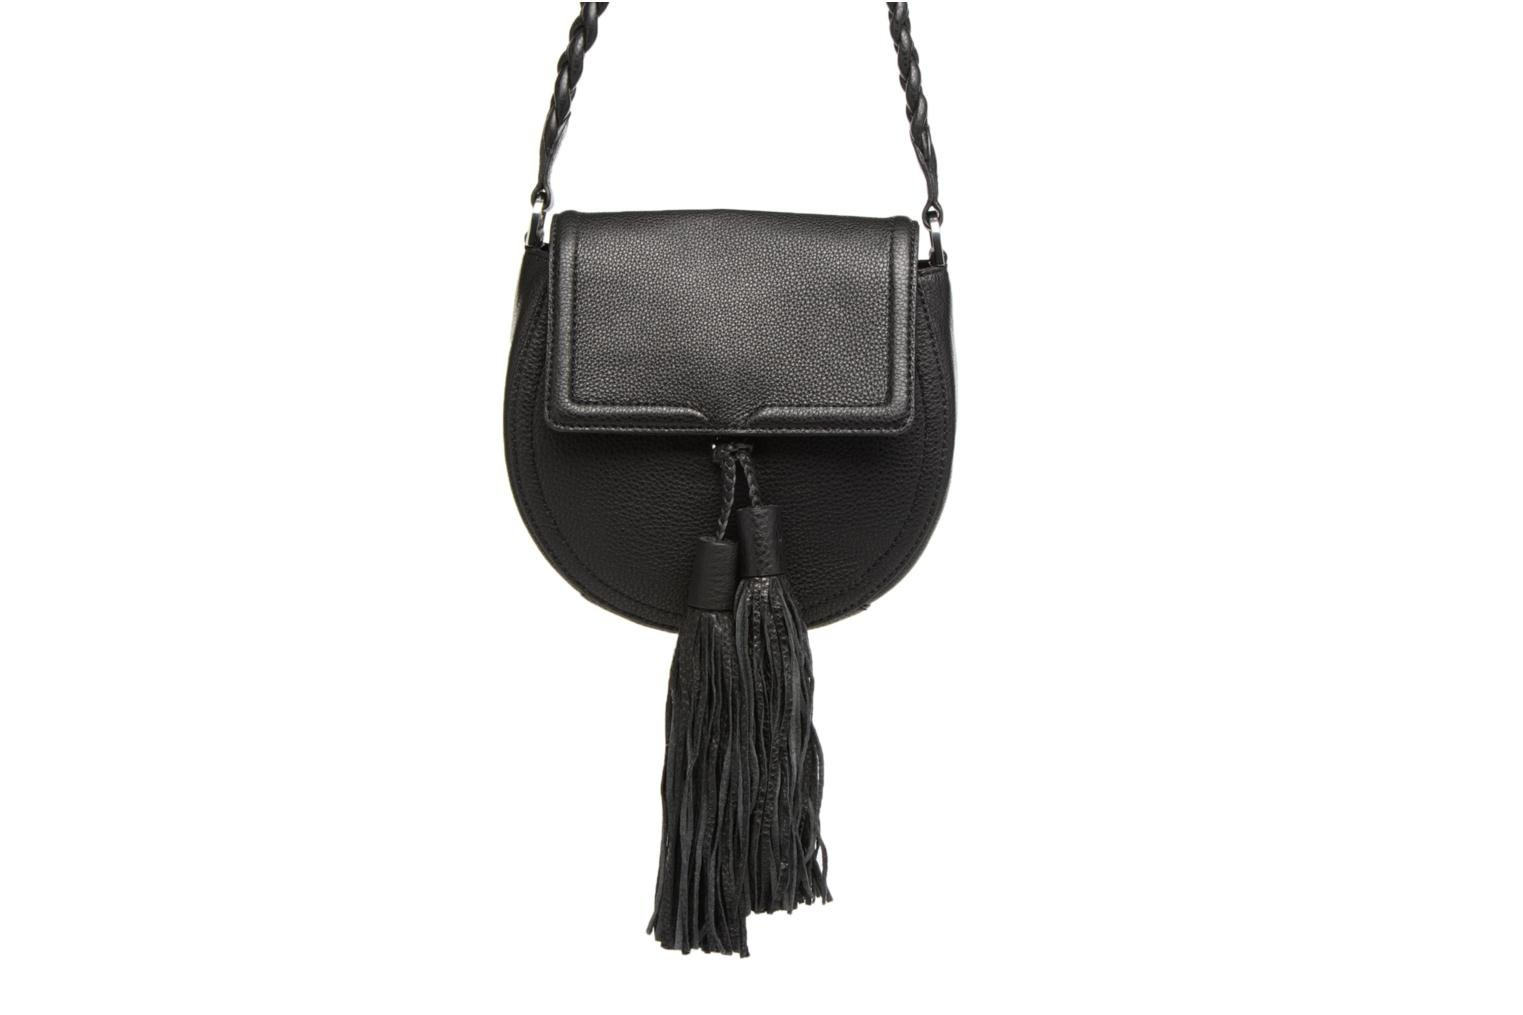 Sacs à main Rebecca Minkoff ISOBEL SADDLE BAG Noir vue détail/paire